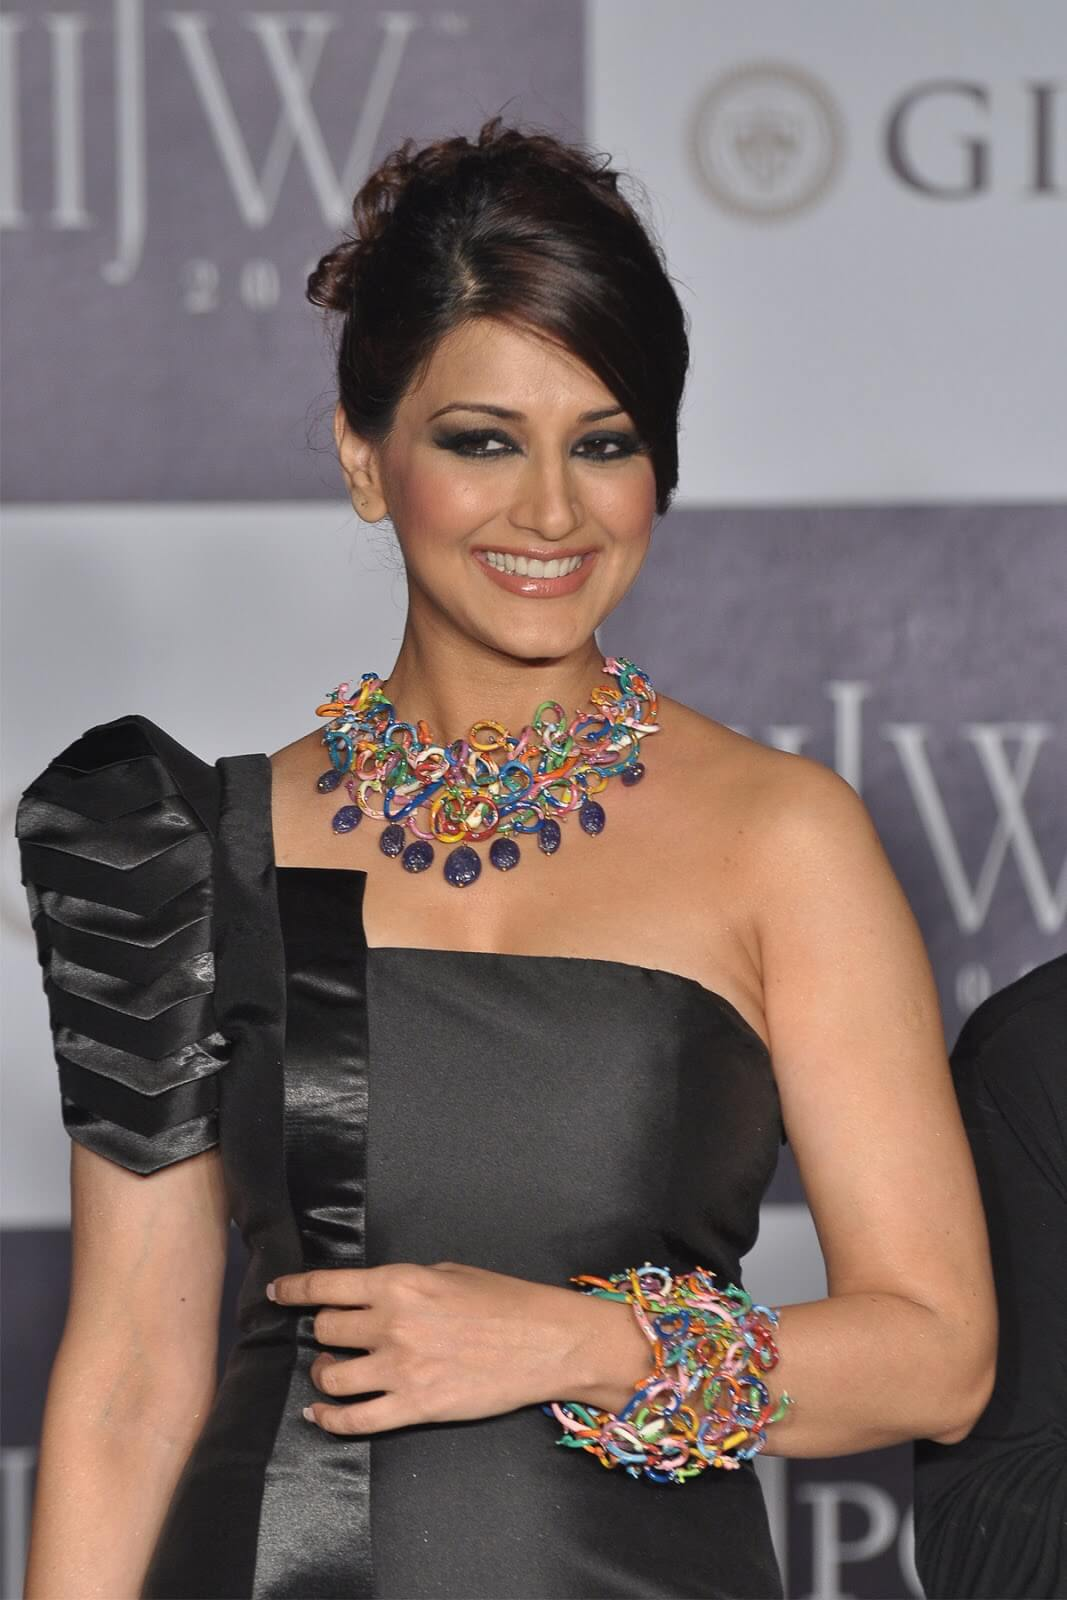 Sonali Bendre Cancer, Death, Photos(image), Family, Husband, Biography, Date Of Birth, Movies, Latest News, Haircut, Net Worth, Married, Education, Son, Awards, Instagram, Wiki, Twitter, Faceb ( (28)